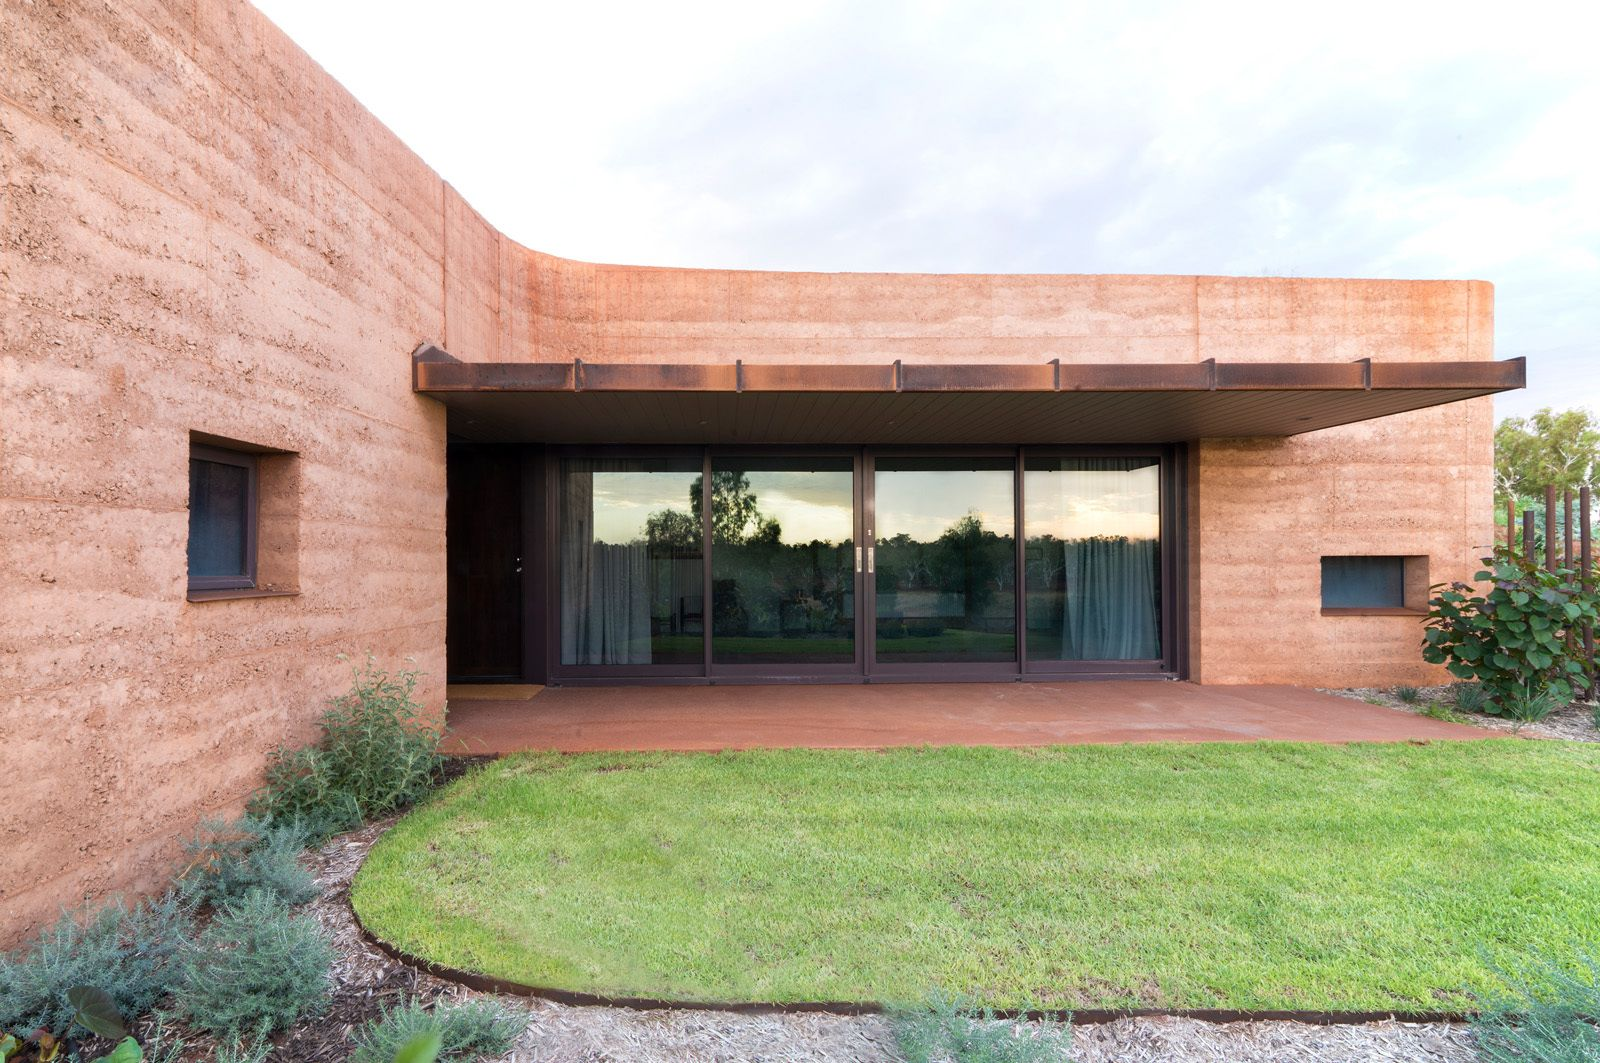 The Great Wall of WA Architecture Front House